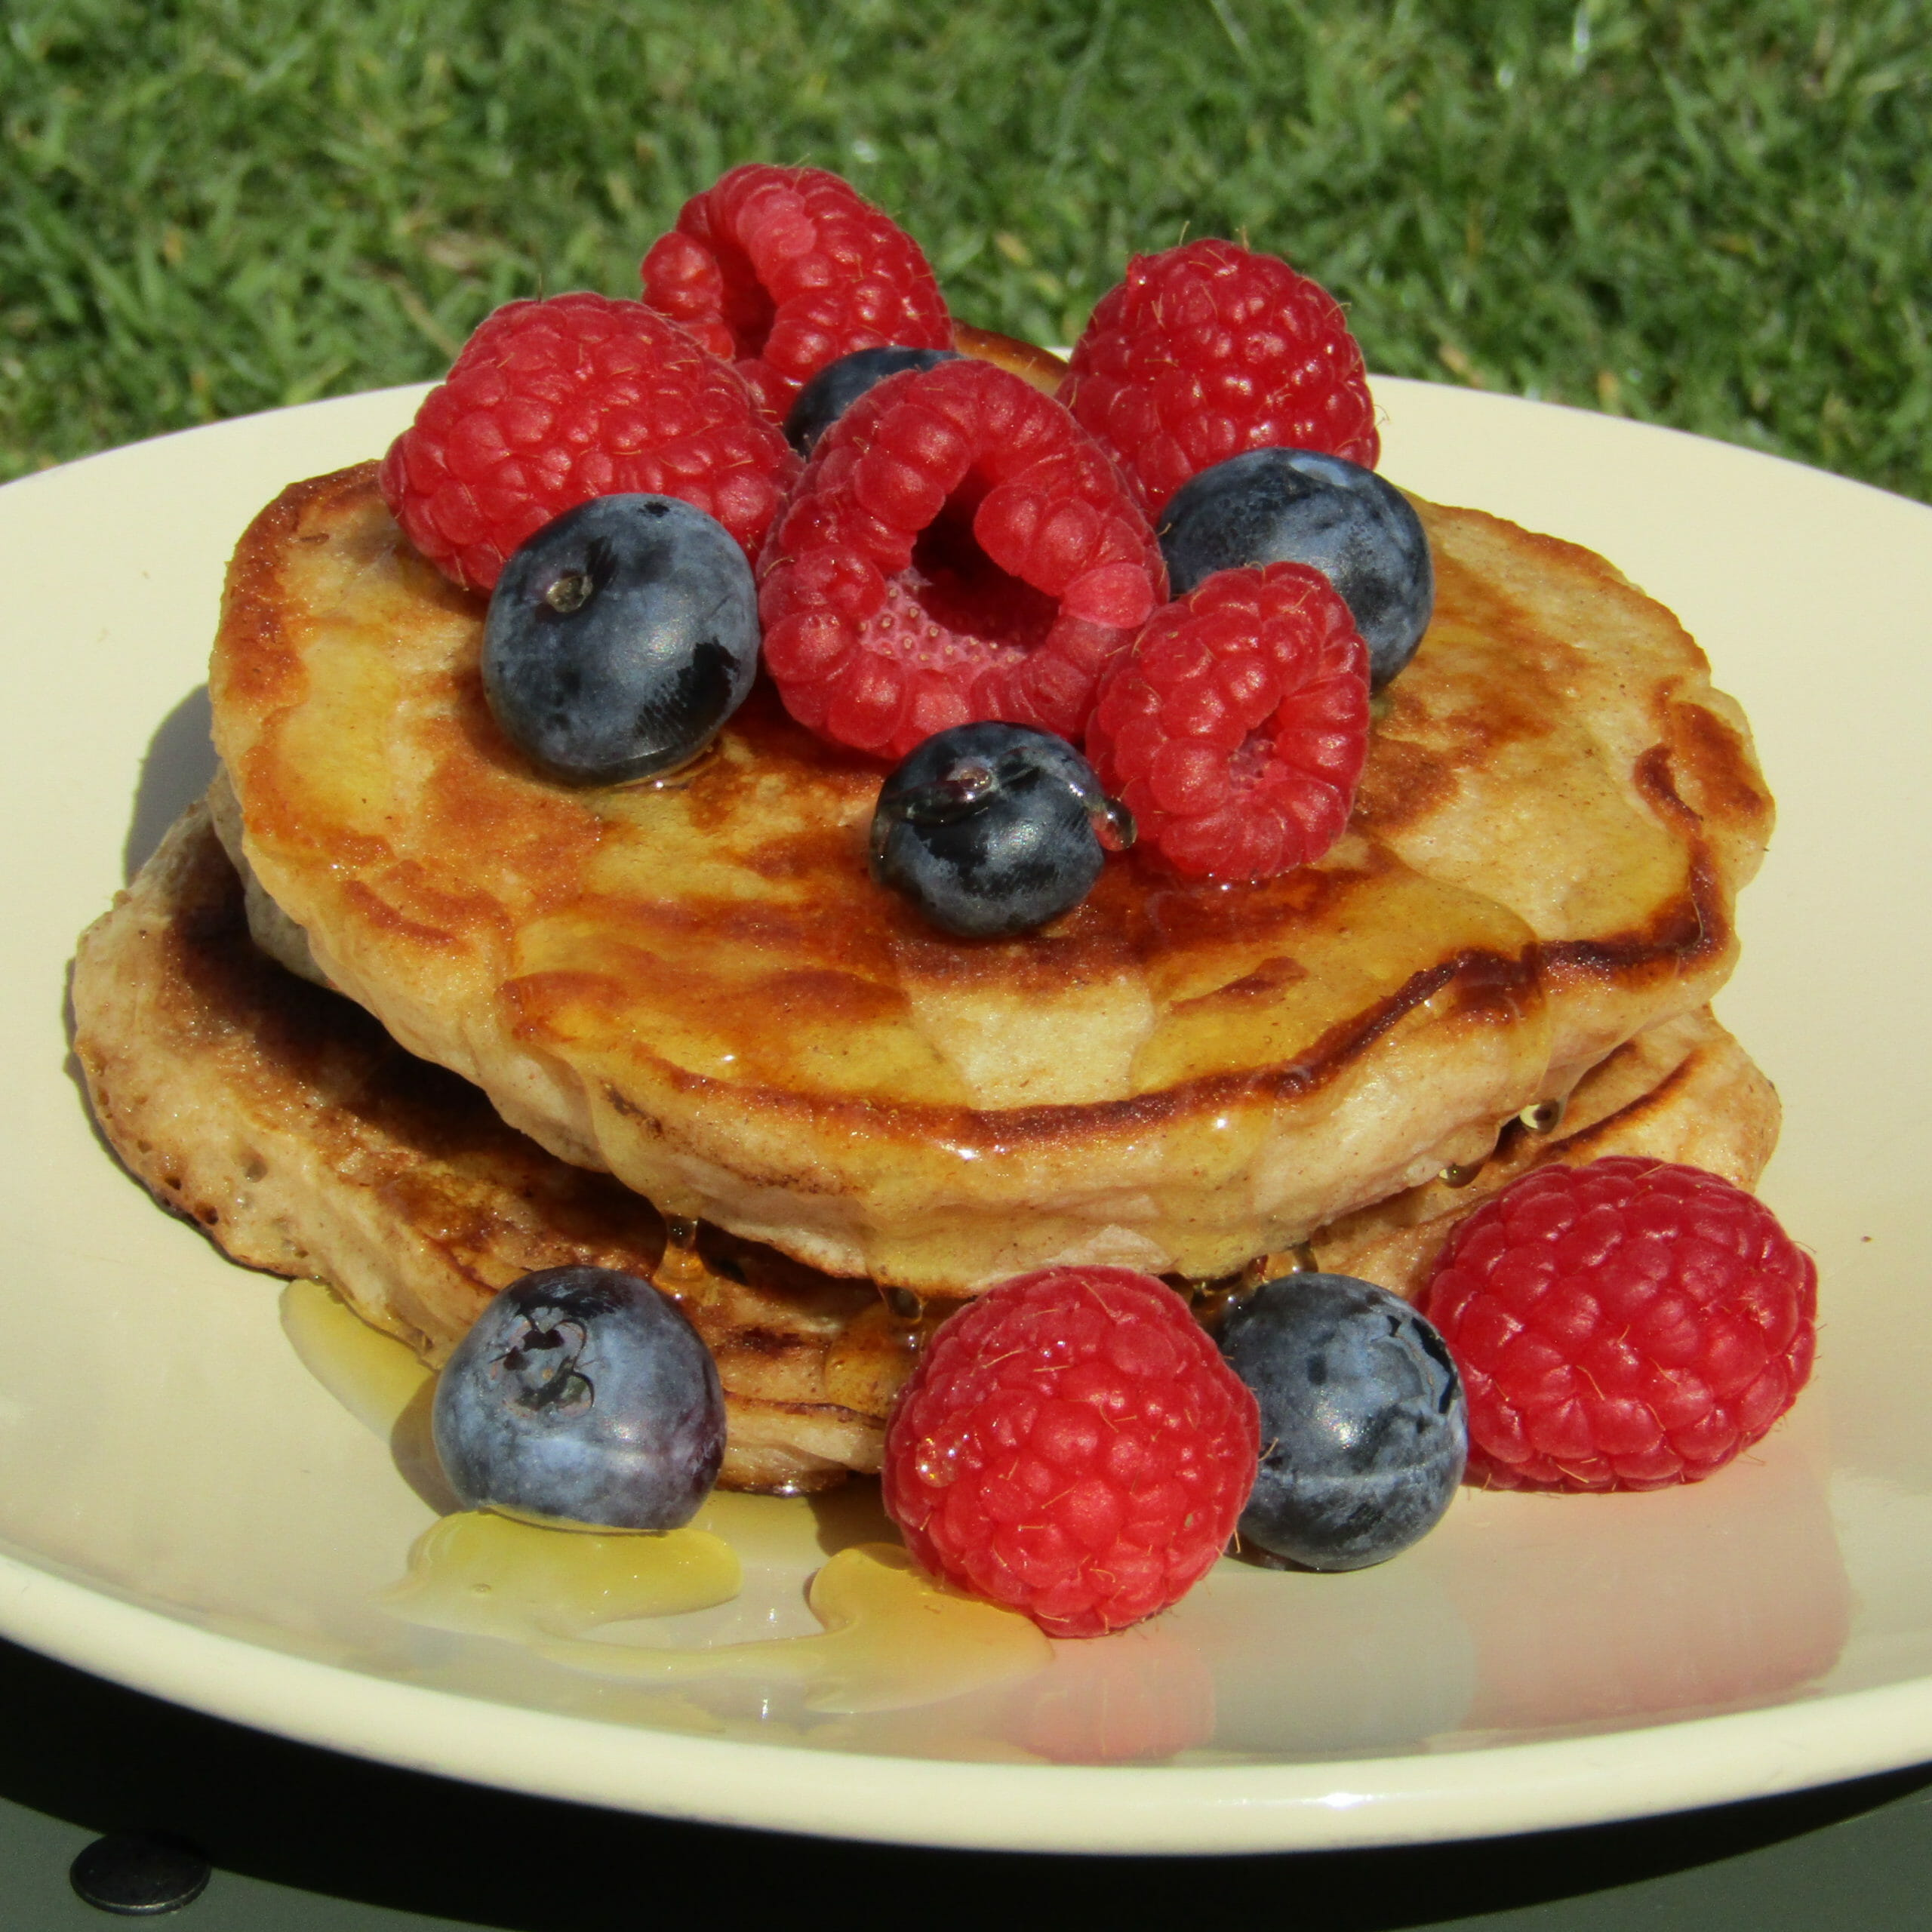 Banana Pancakes and fruit